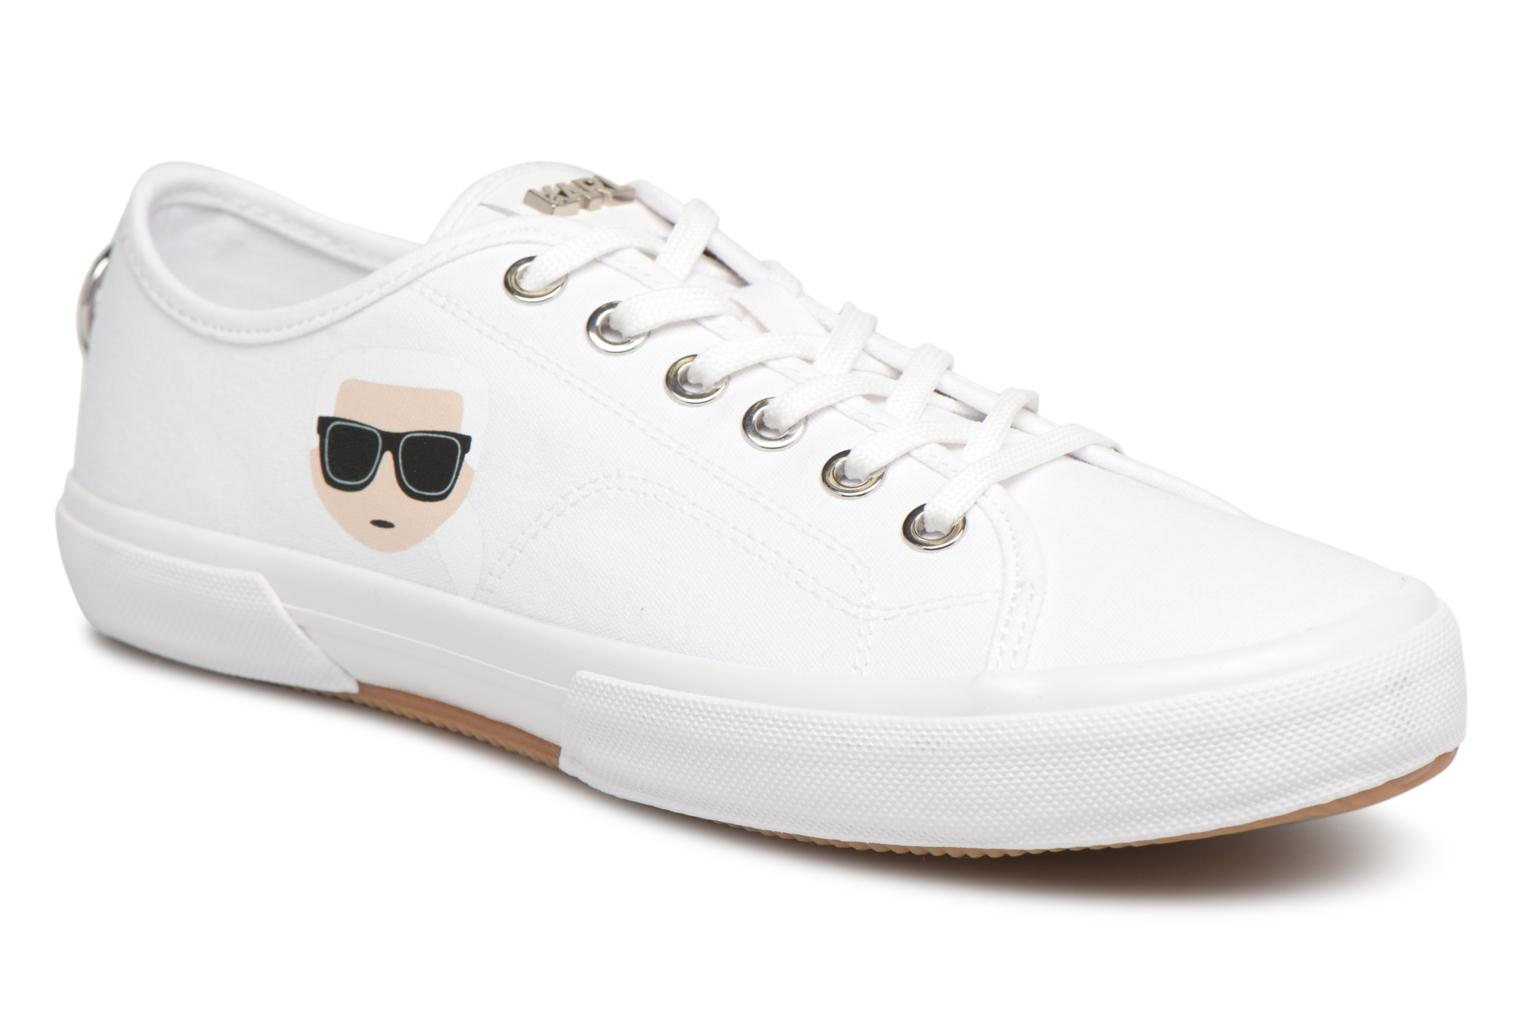 KARL LAGERFELD KAMPUS LACE SHOE - Trainers - white 4SQoi